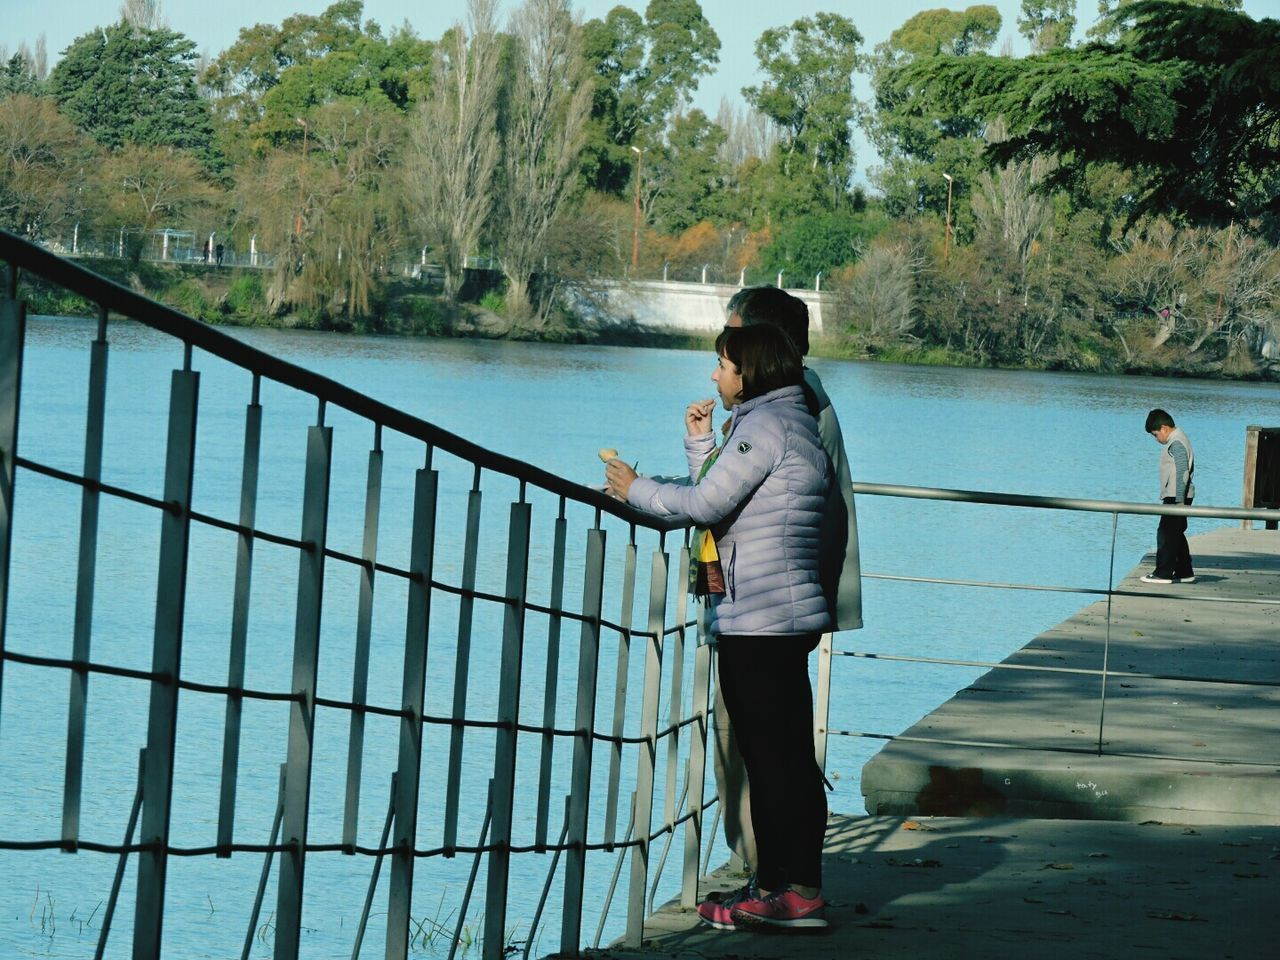 railing, full length, water, real people, river, one person, leisure activity, side view, tree, day, casual clothing, standing, lifestyles, outdoors, nature, women, sky, young adult, people